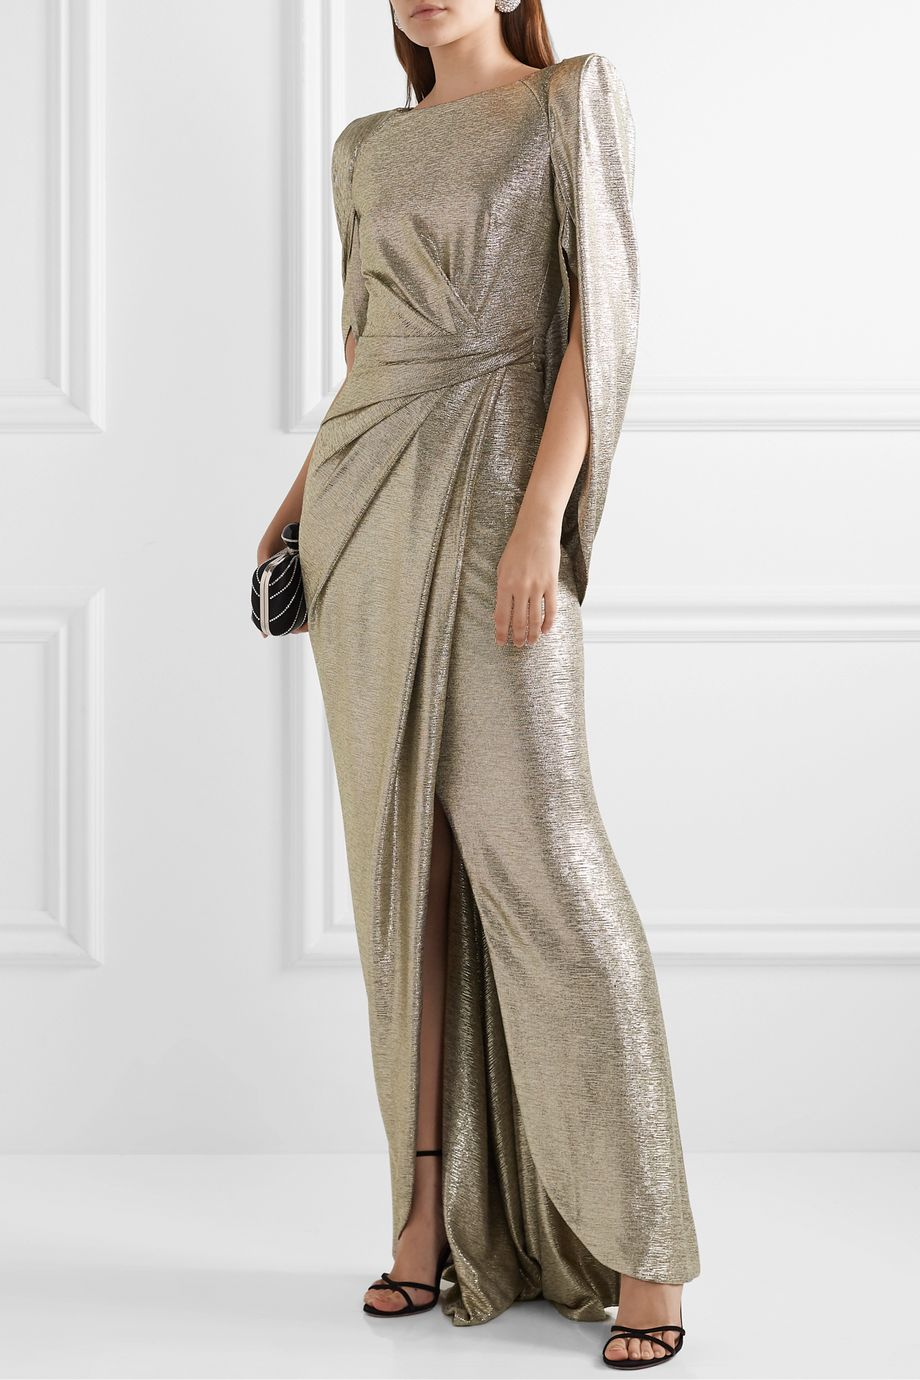 Talbot Runhof Socrates cape-effect draped metallic stretch-jersey gown